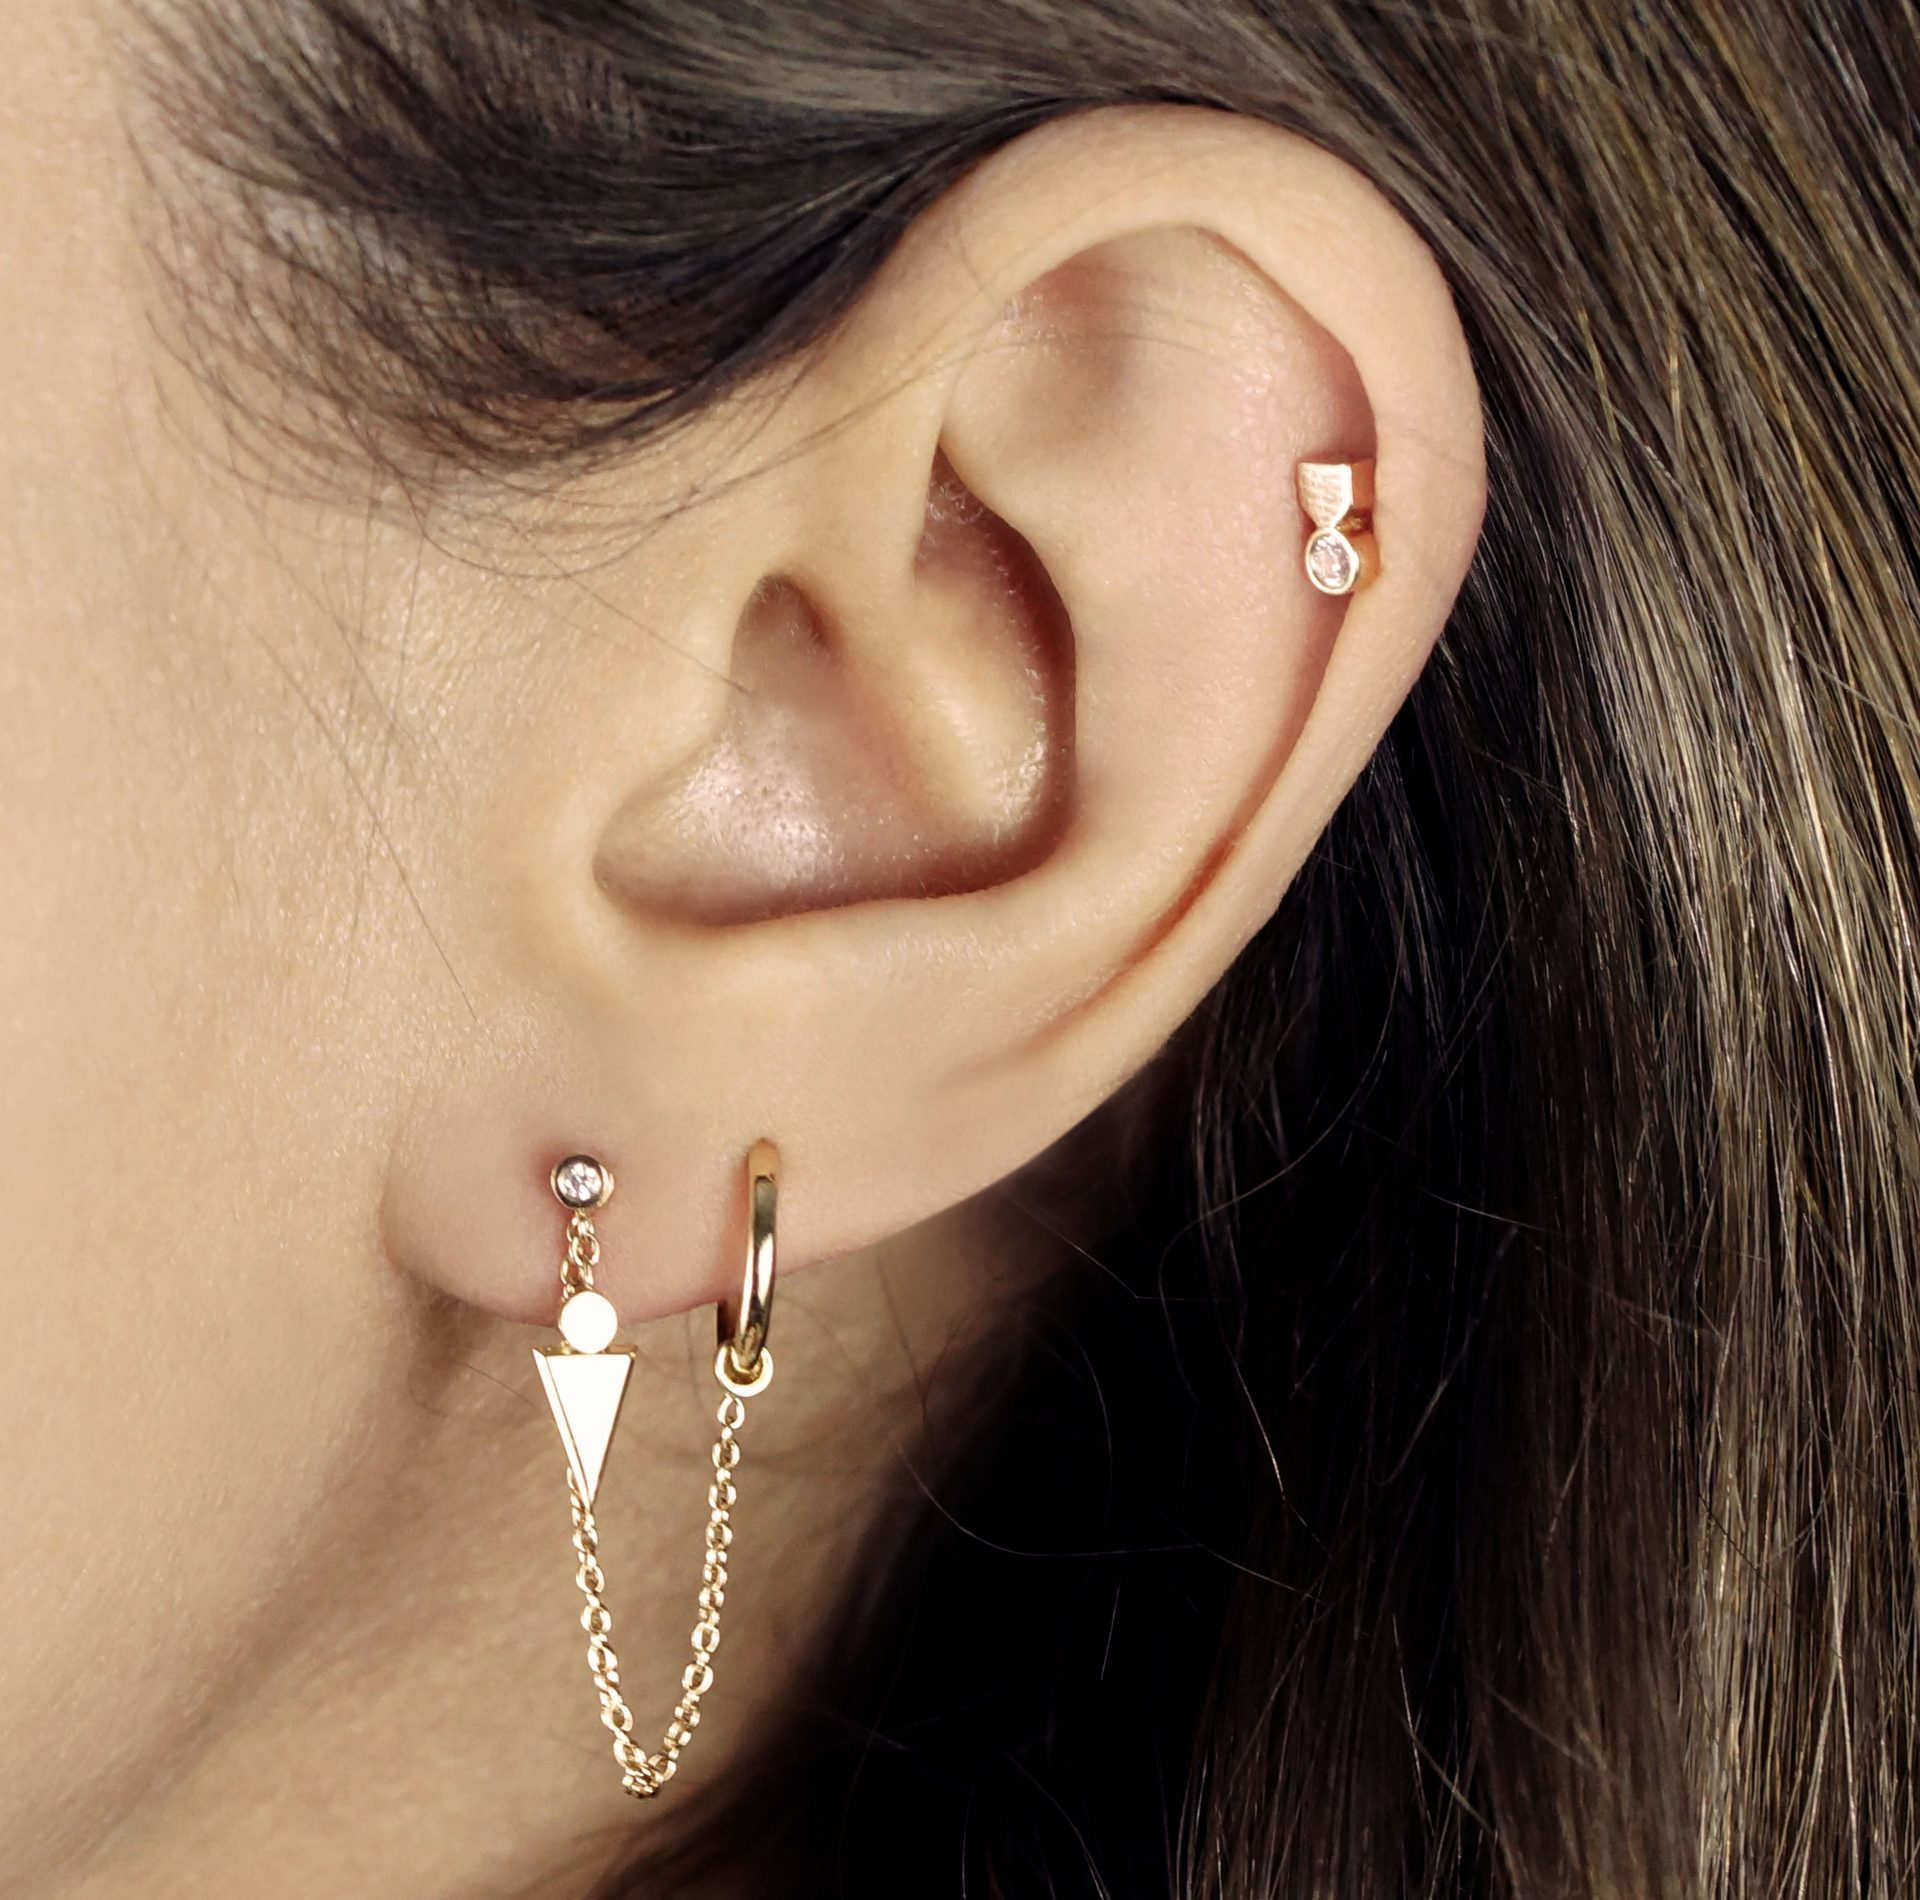 Check out our photo gallery of Cute Ear Piercing Types, Combinations and Jewelry for Tragus Piercings, Cartilage Earrings, Helix Piercings.